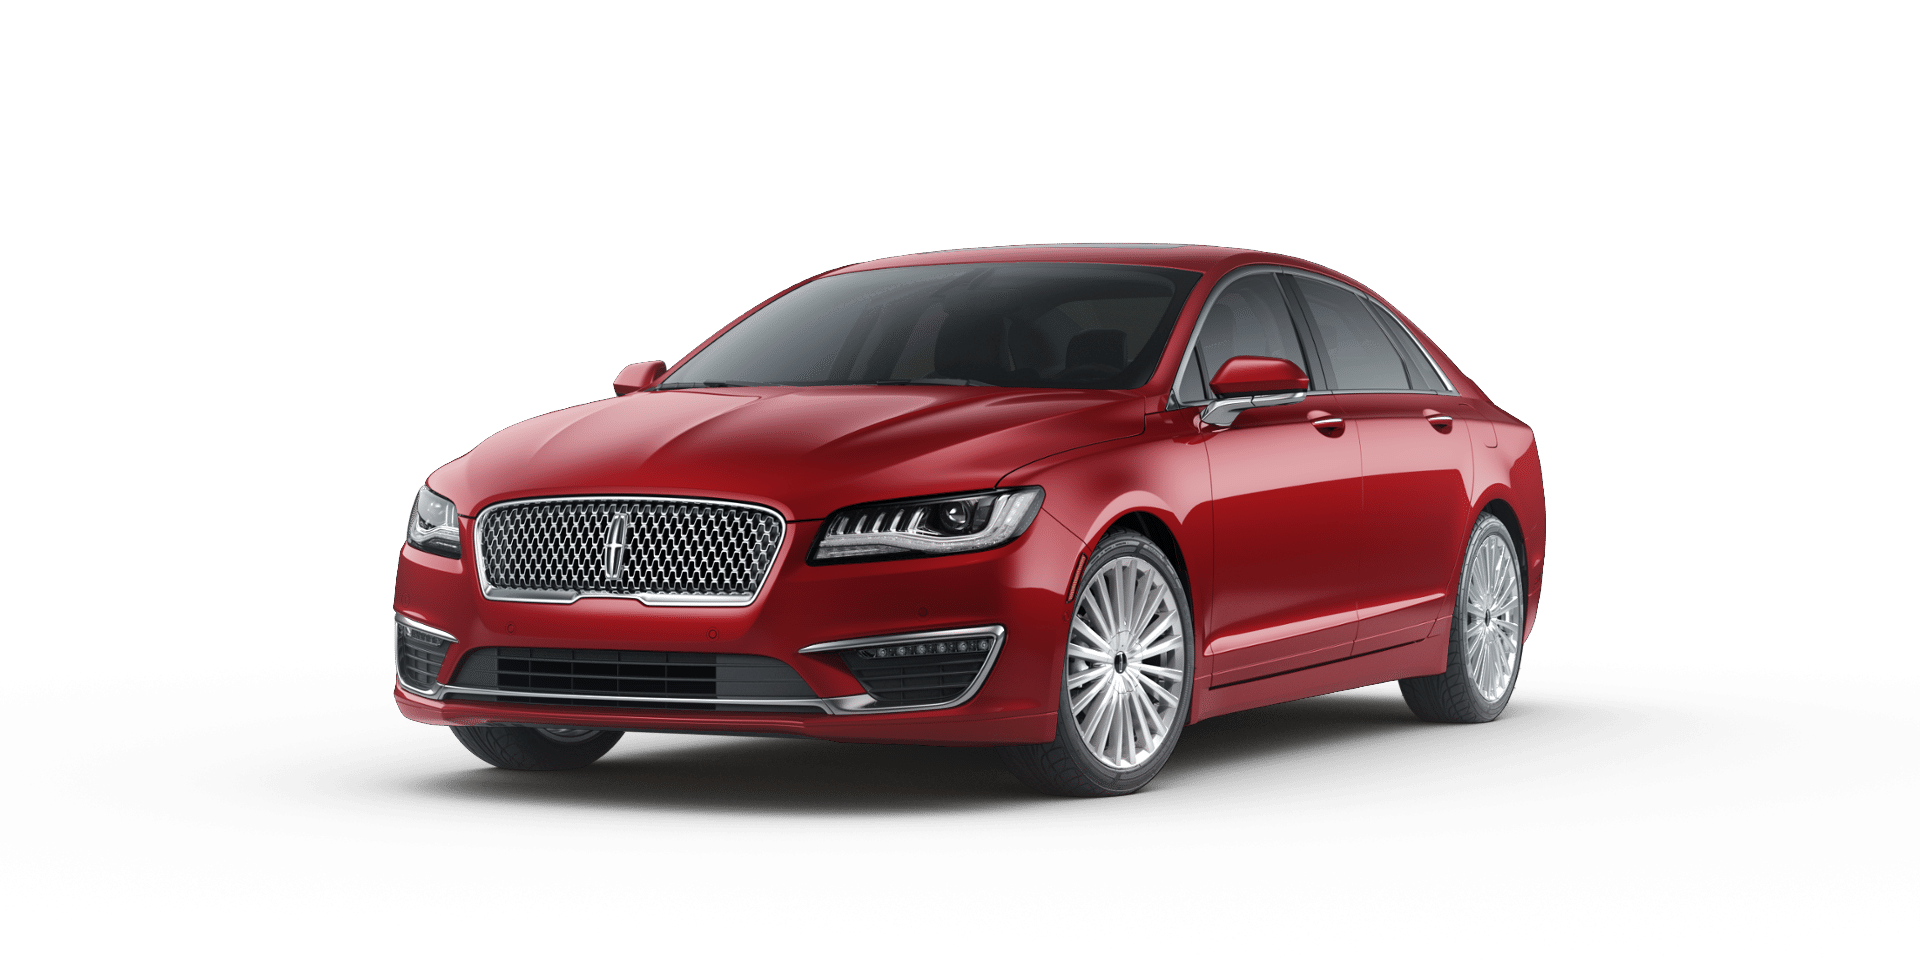 2017 Lincoln Mkz Build Amp Price Lincoln Mkz New Lincoln Cars Hybrid Car